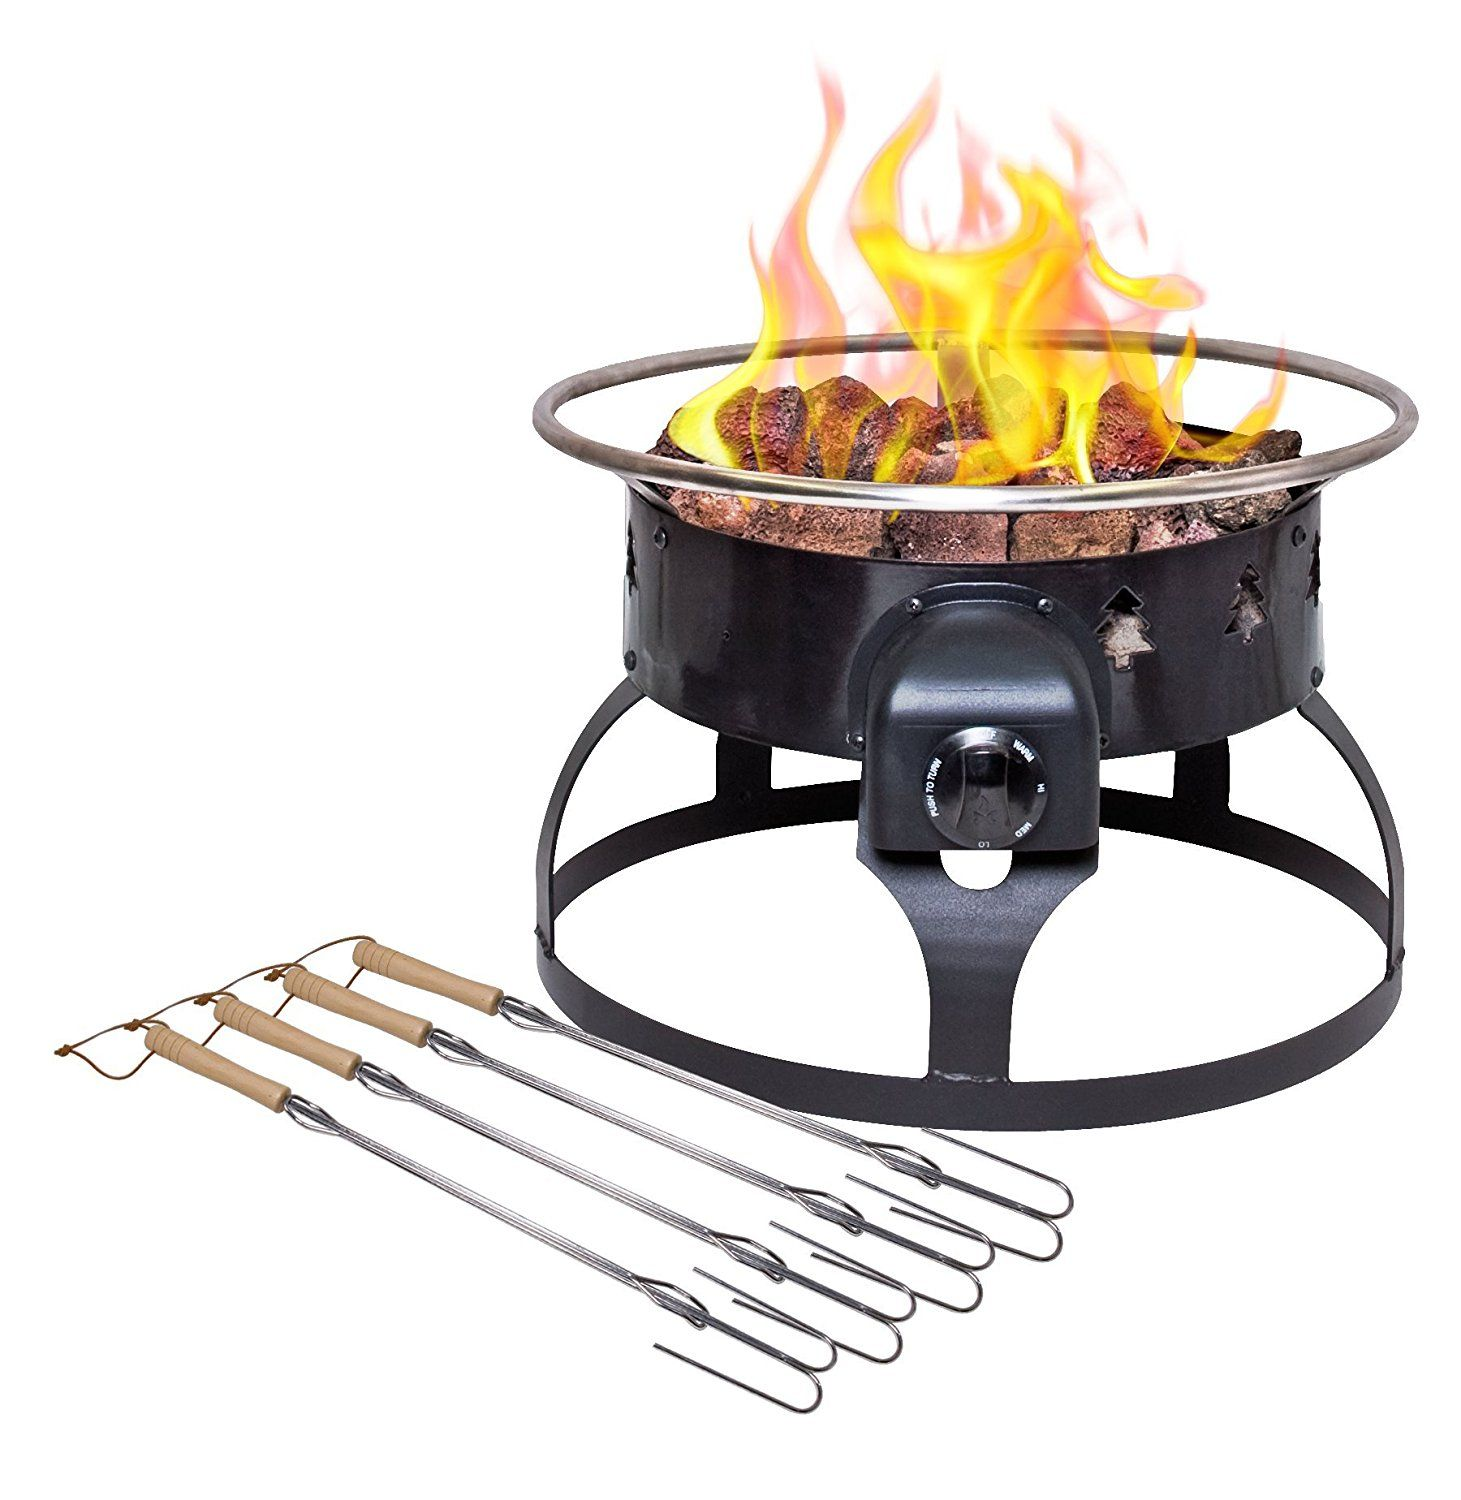 Top 7 Best Portable Fire Pits In 2017 Portable Propane Fire Pit Portable Fire Pits Fire Pit